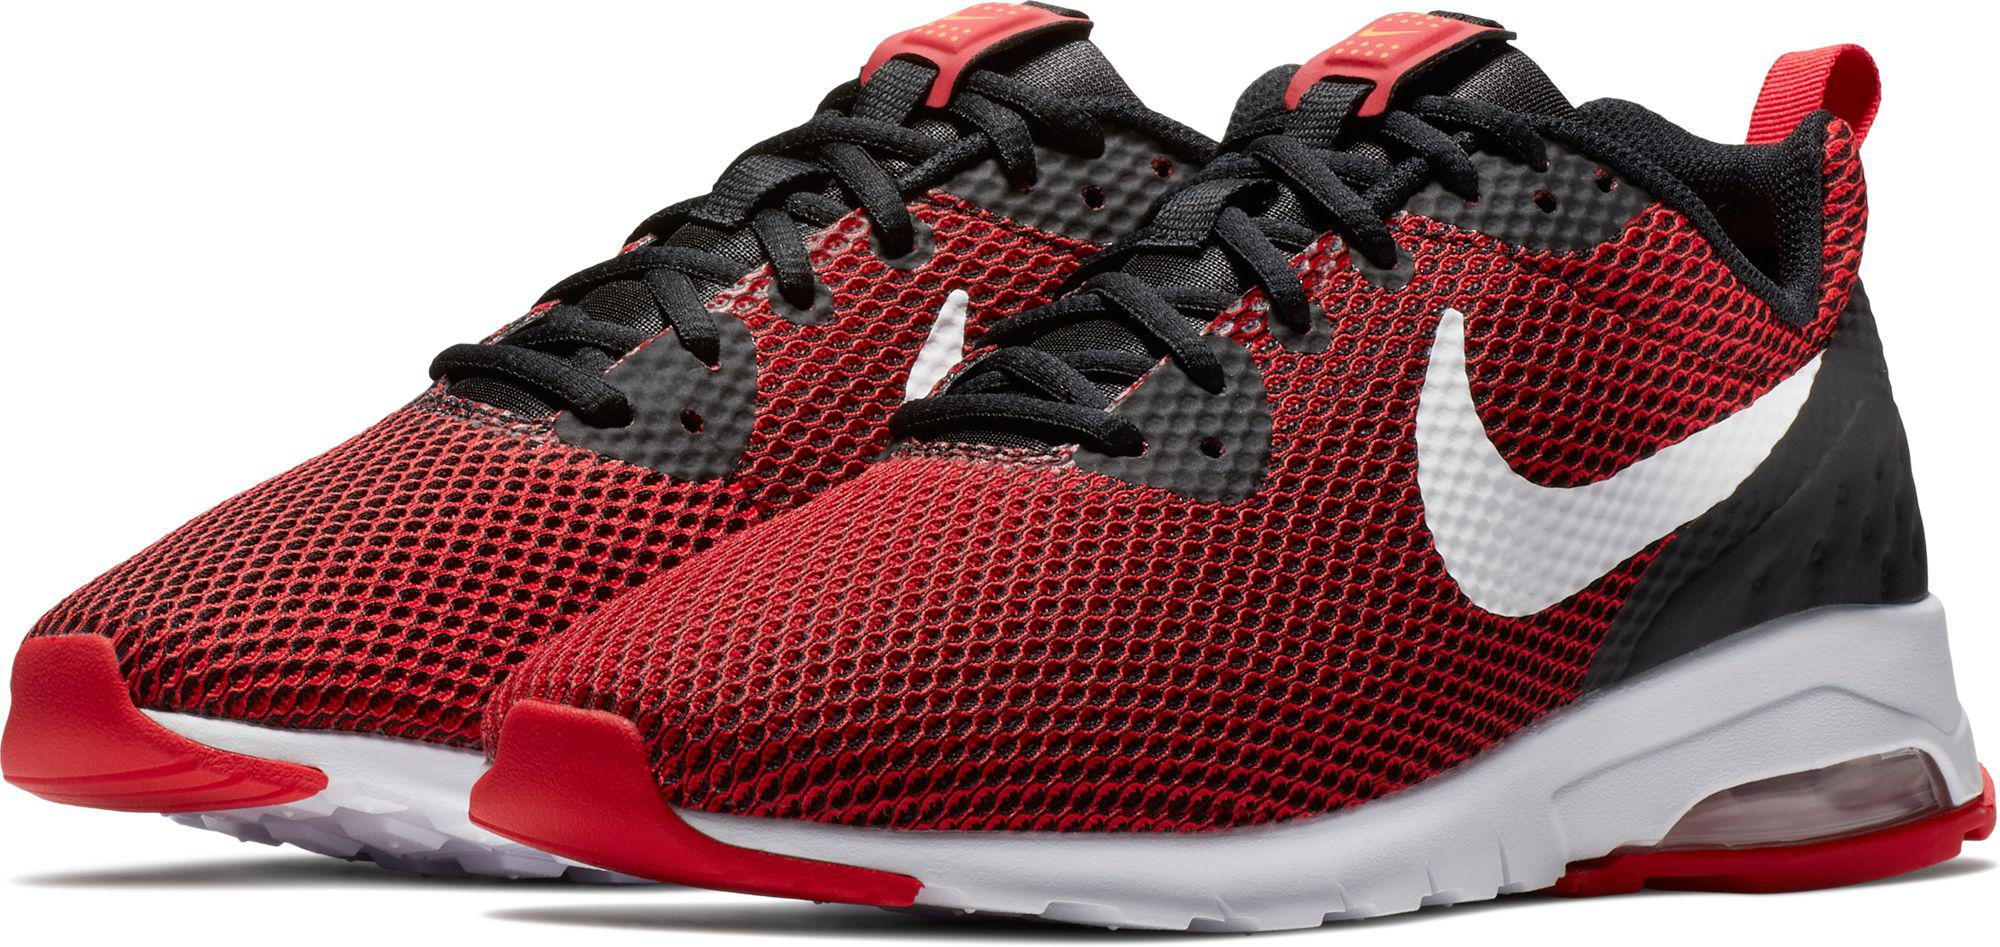 c32a1ae0e2d8 Lyst - Nike Air Max Motion Low Shoes in Red for Men